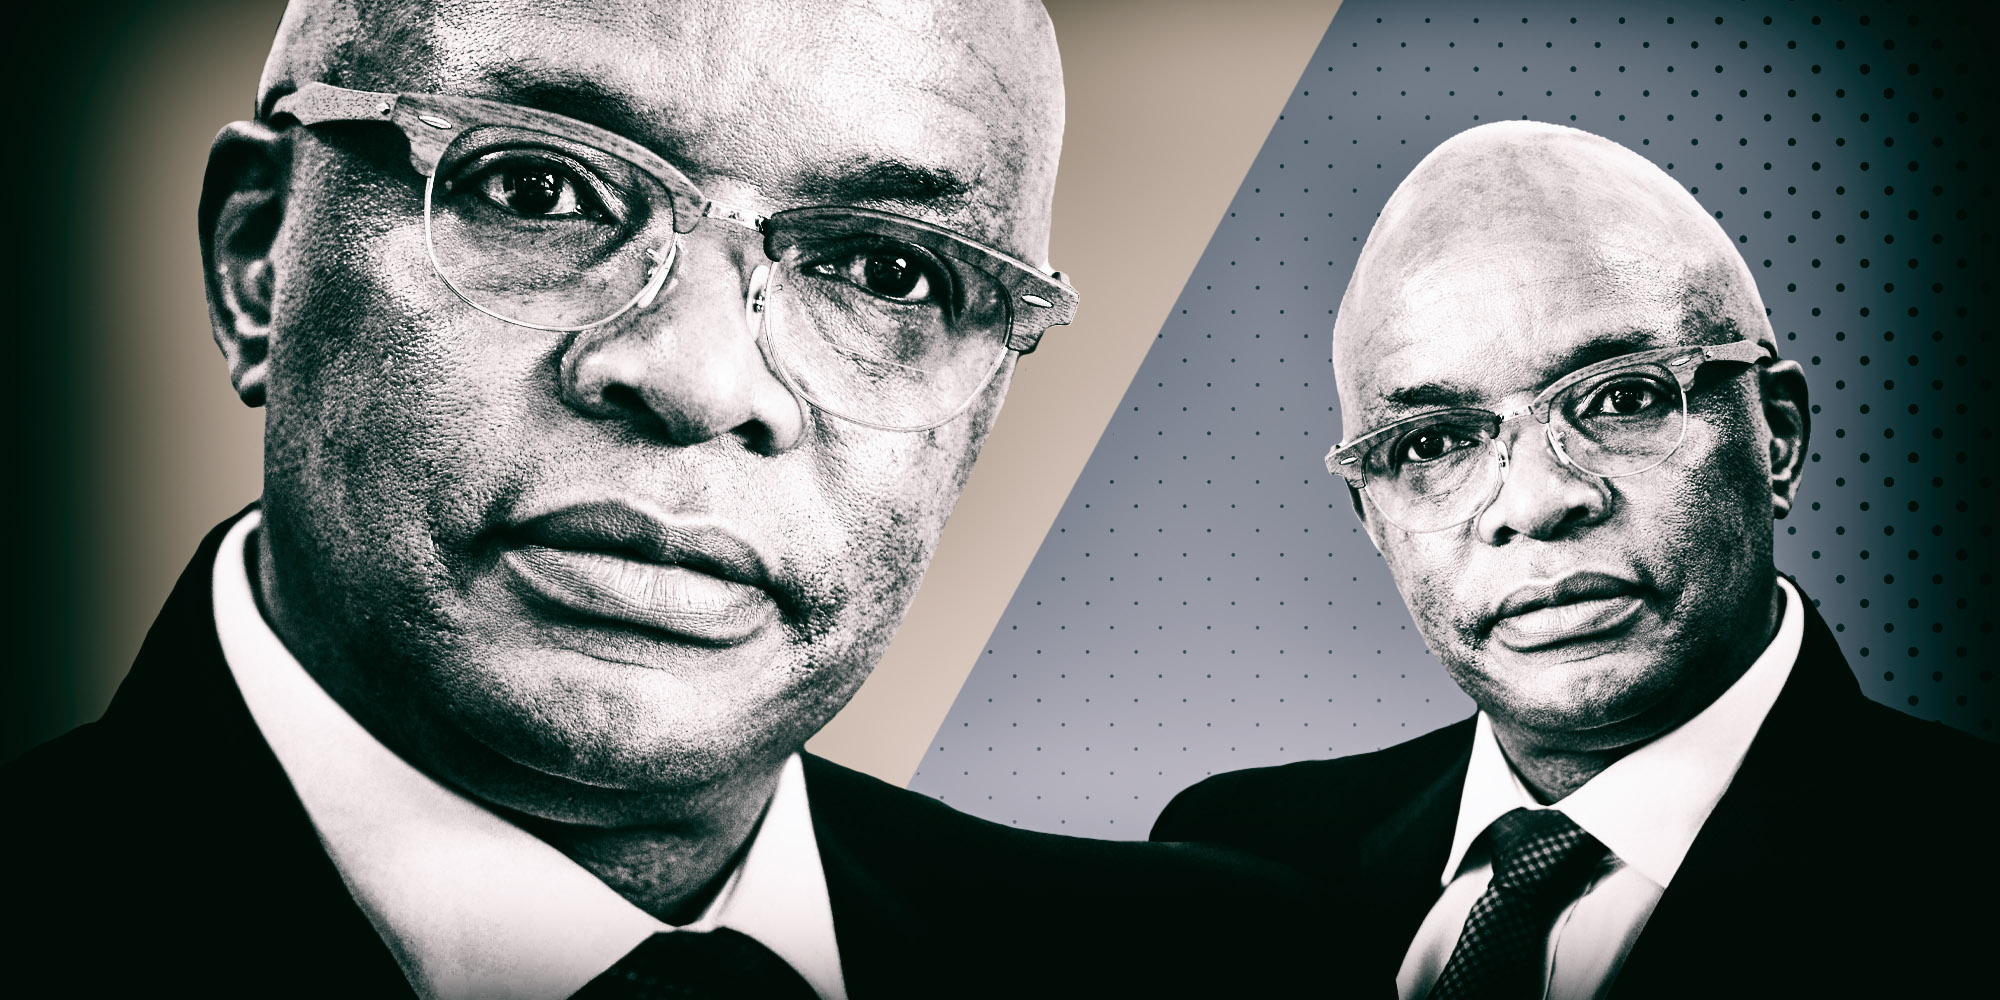 Absa, AngloGold Ashanti and the Reserve Bank rocked by disputed sexual harassment claim levelled against Sipho Pityana - Daily Maverick